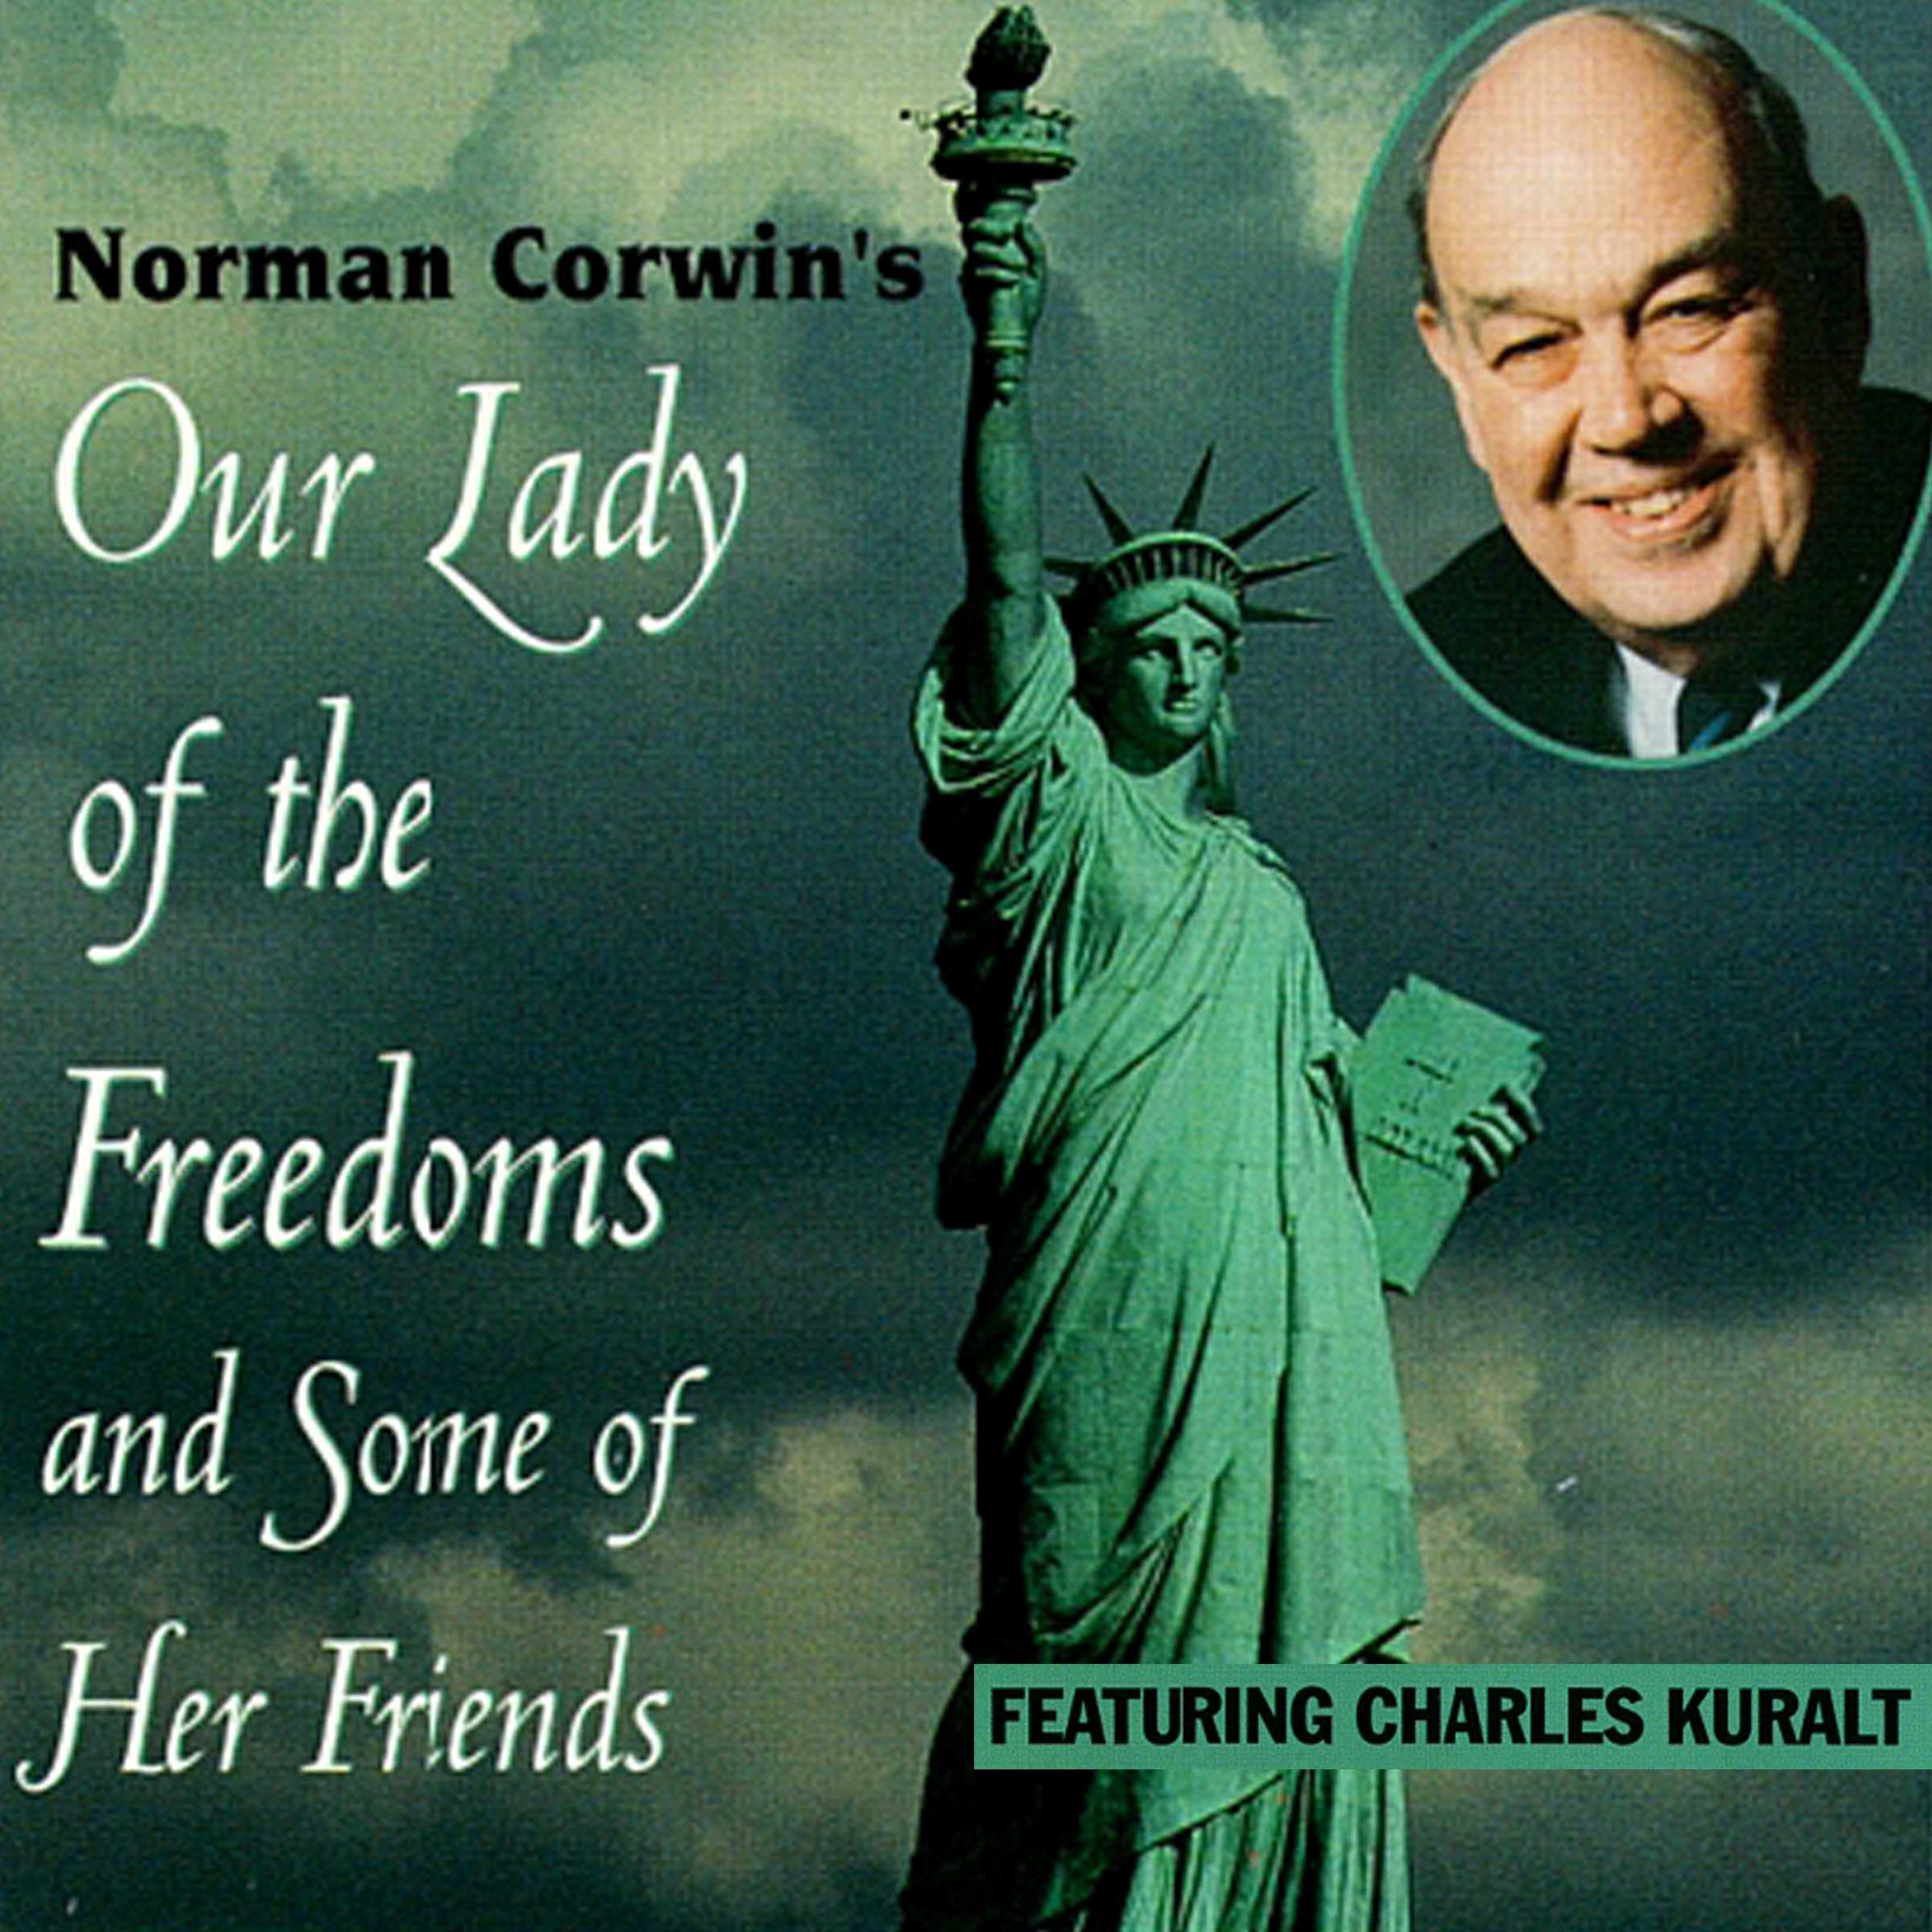 Our lady of the freedoms 9780743541640 hr